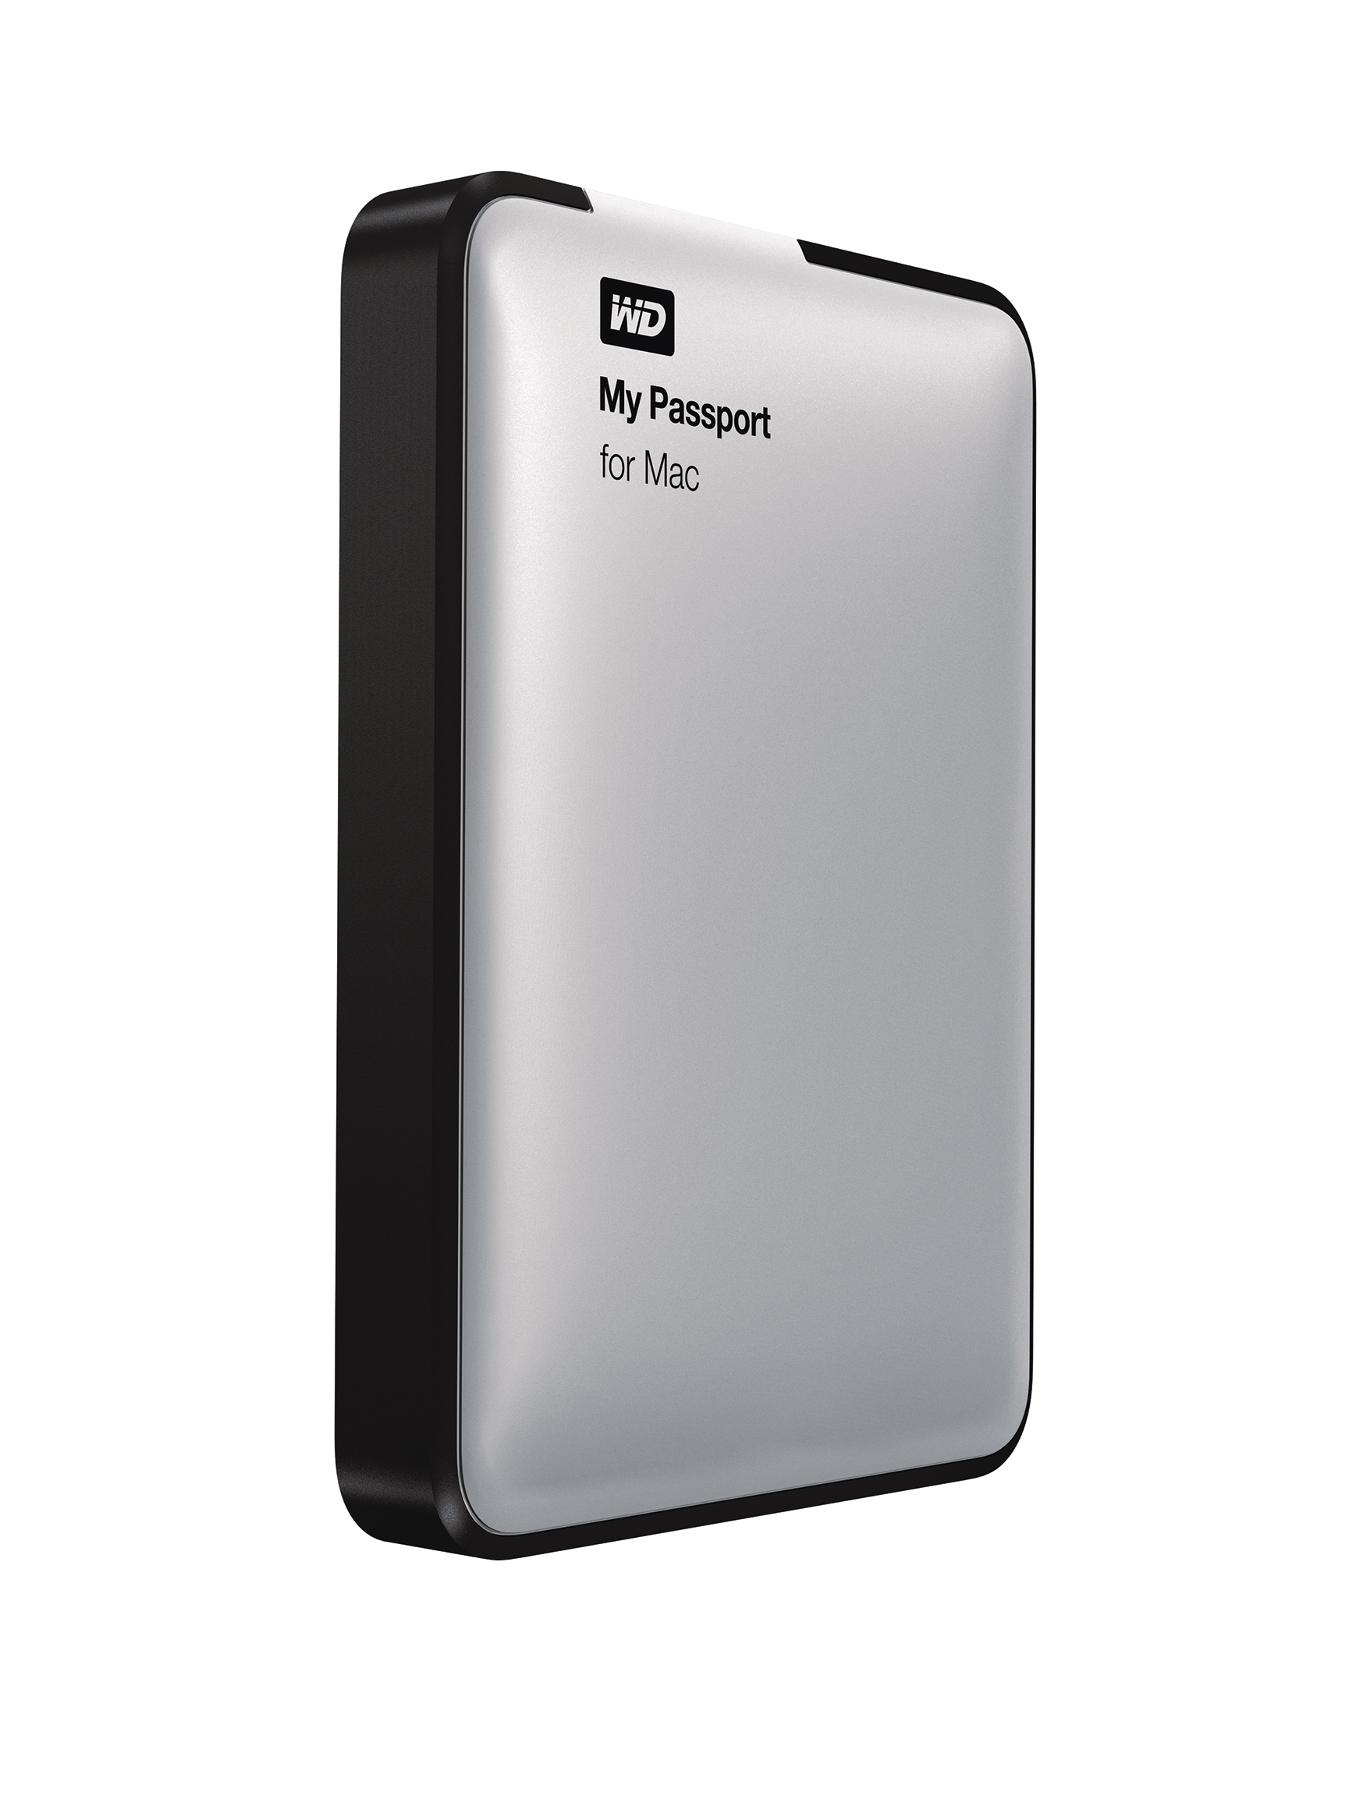 My Passport 500Gb for Mac Portable Hard Drive - Silver